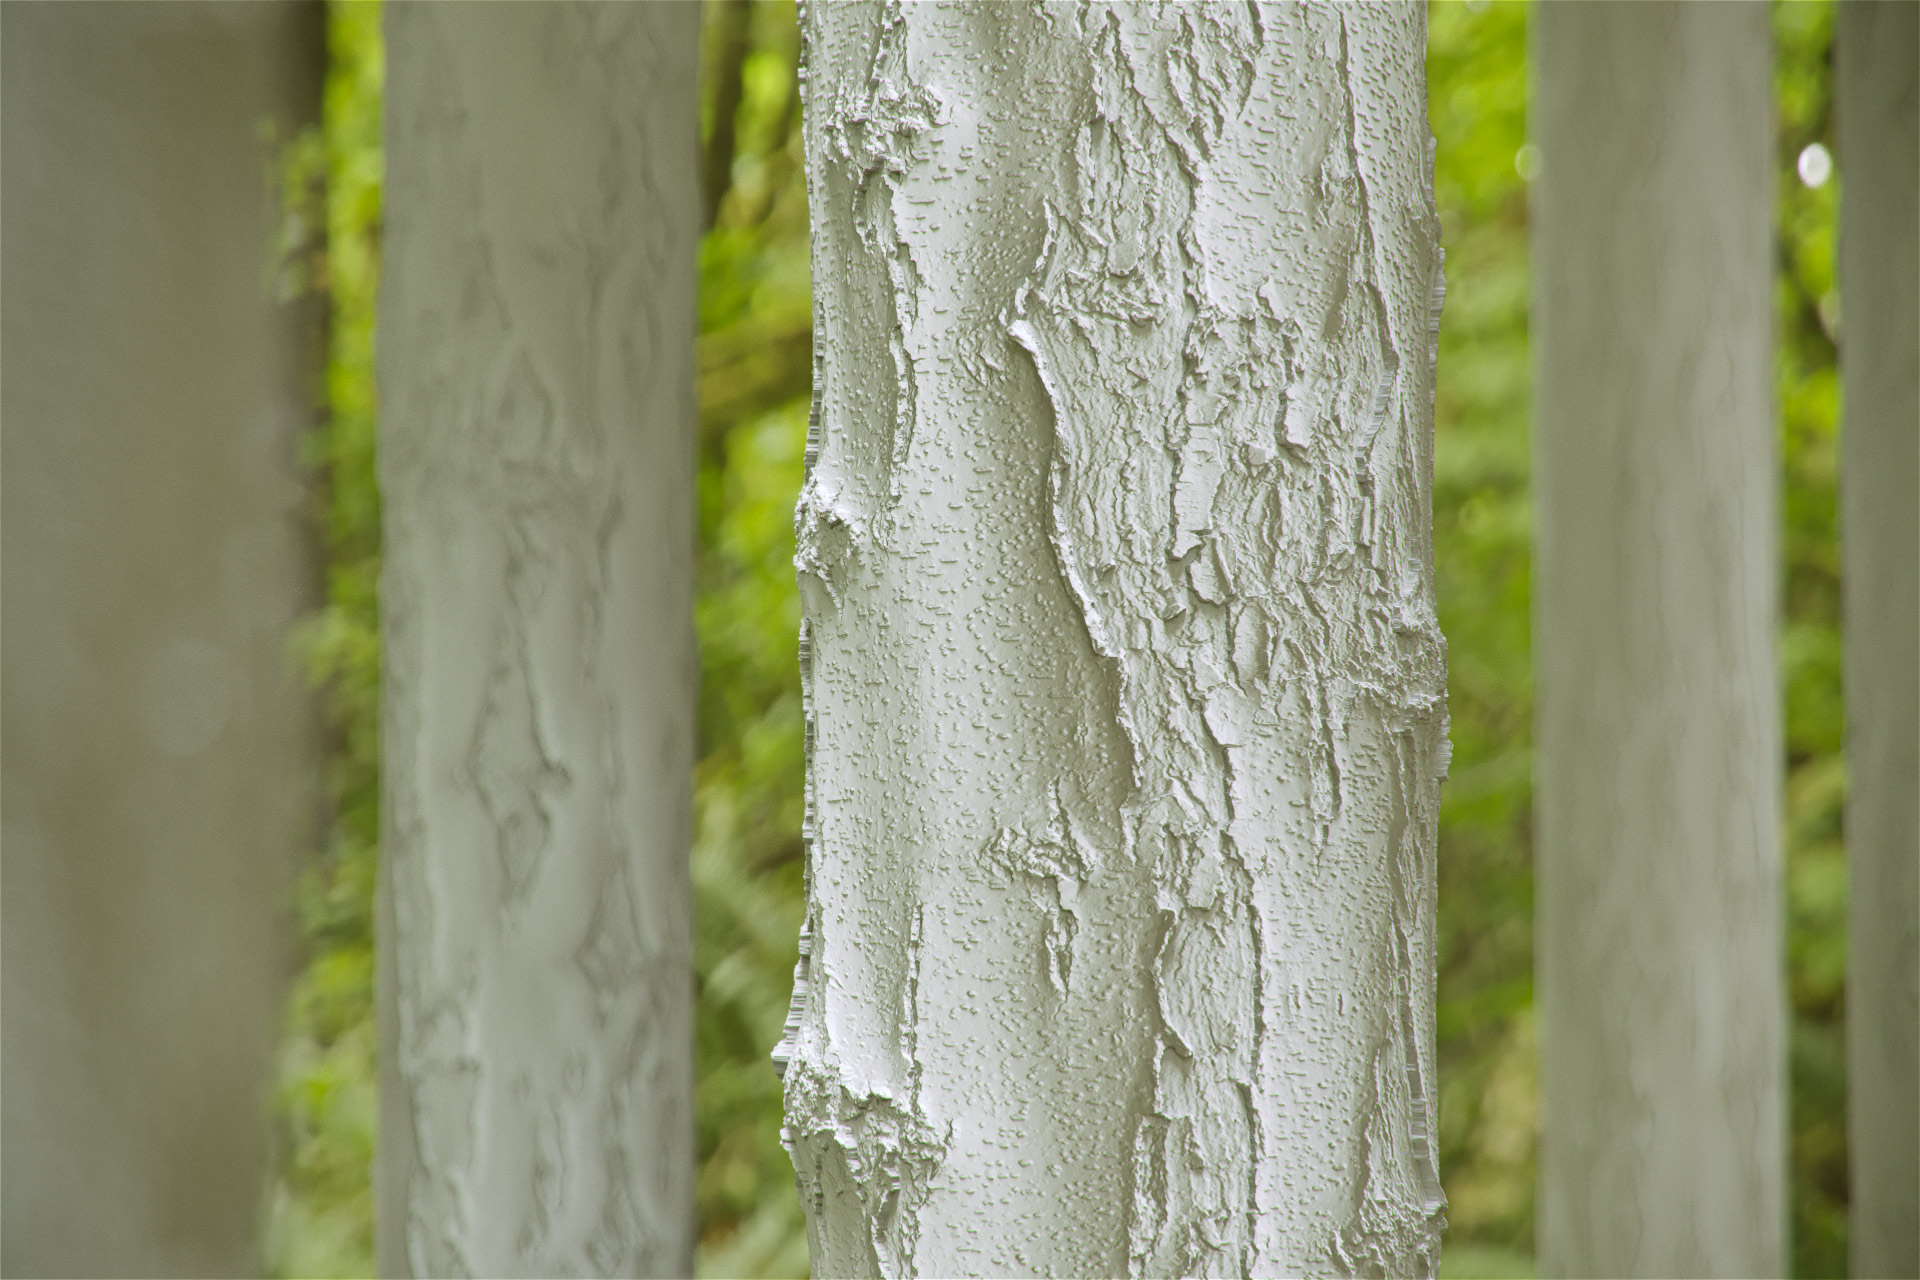 The image shows a clay render of a forest render made using the birch tree bark material from Friendly Shade library